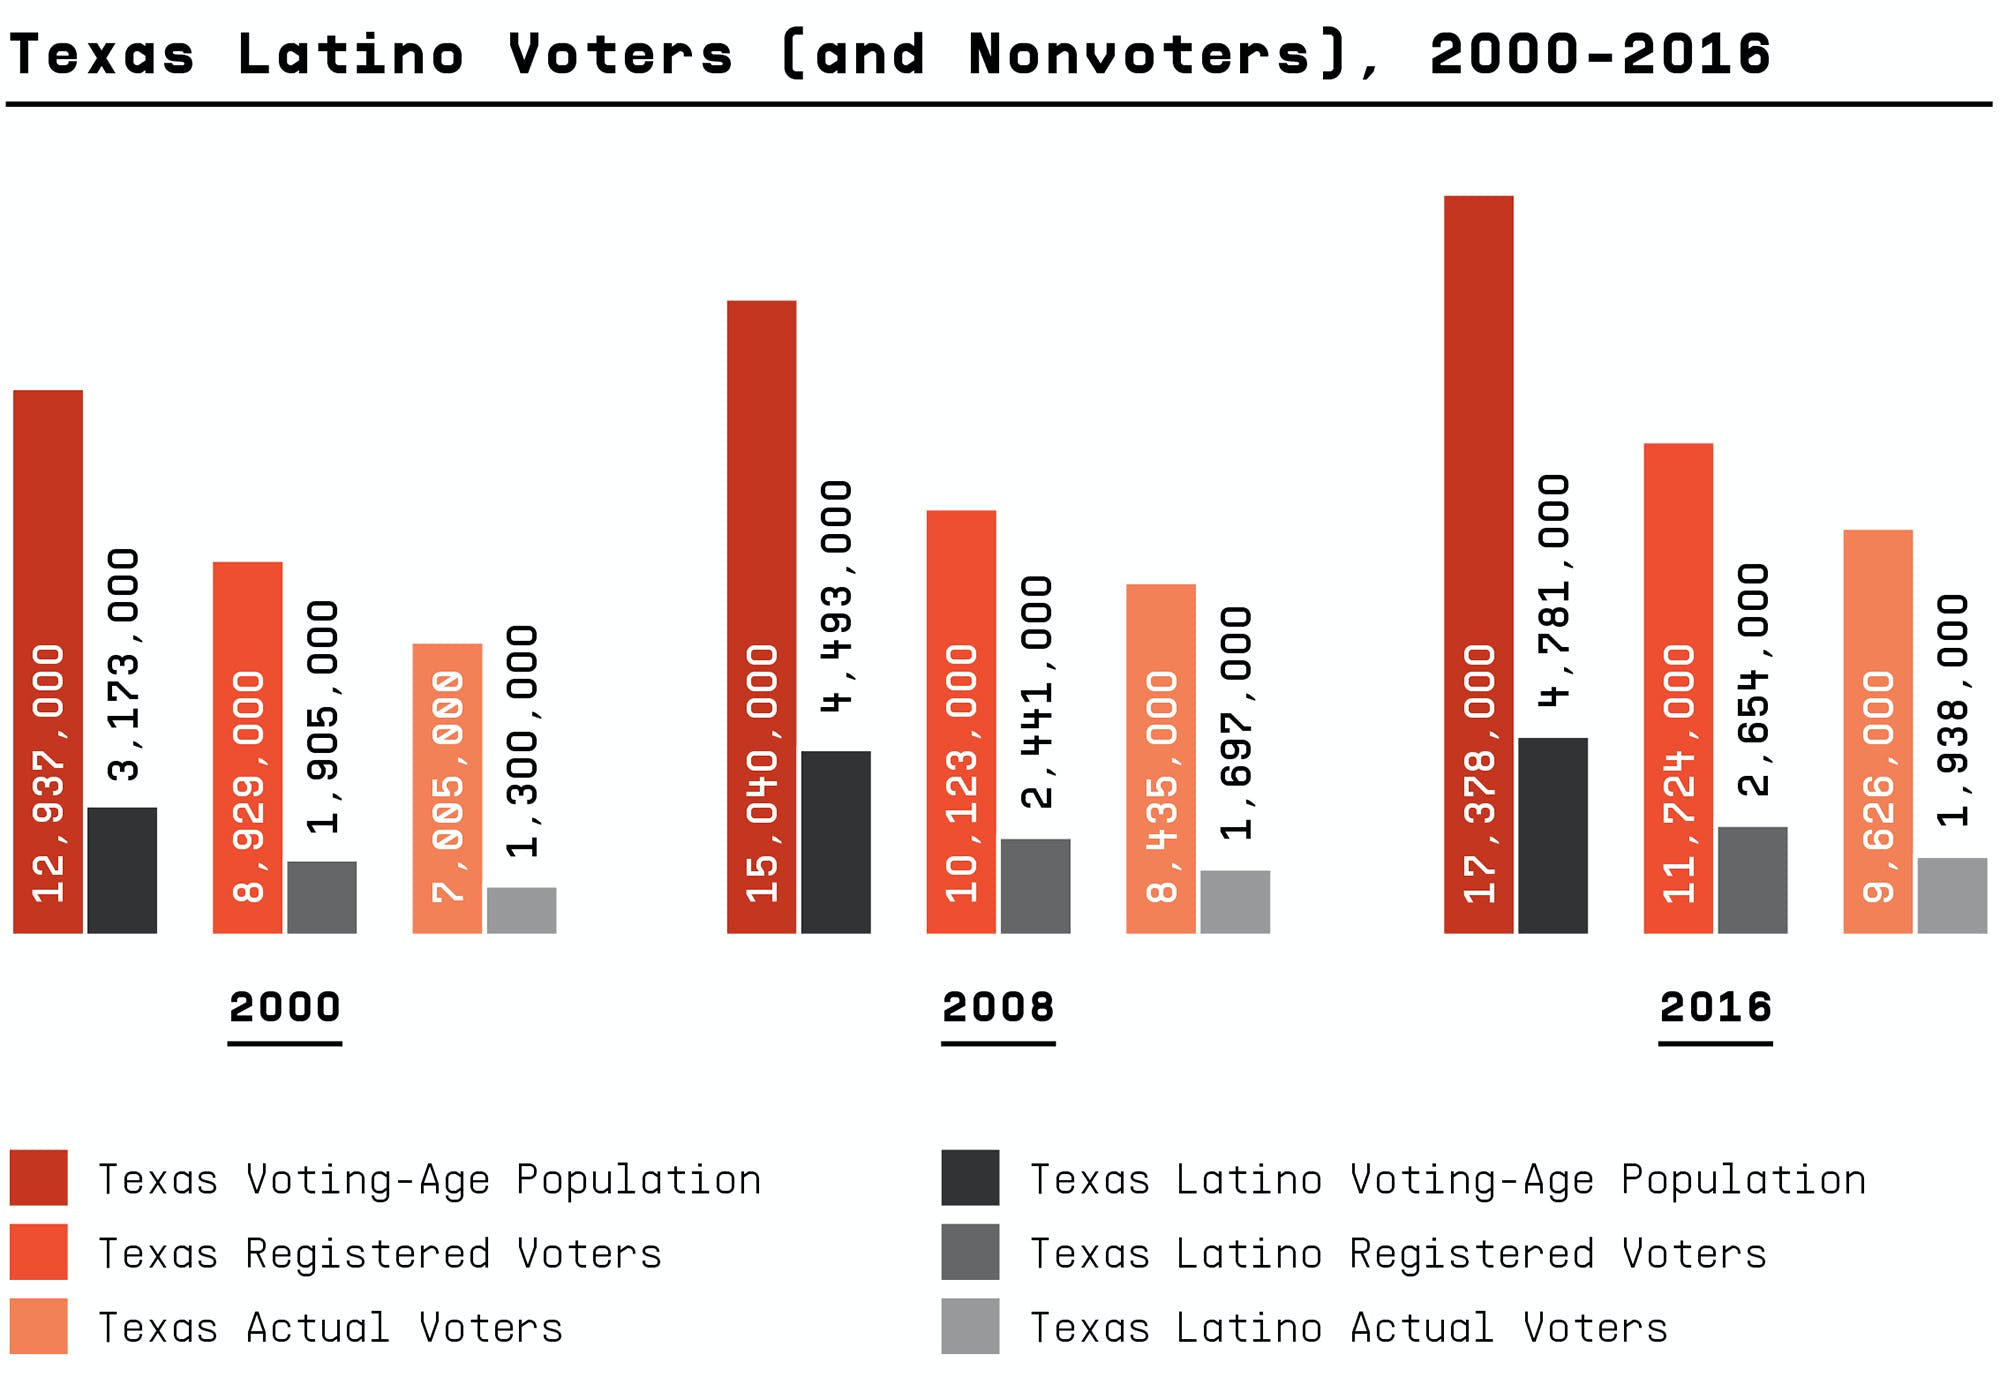 Texas Latino Voters